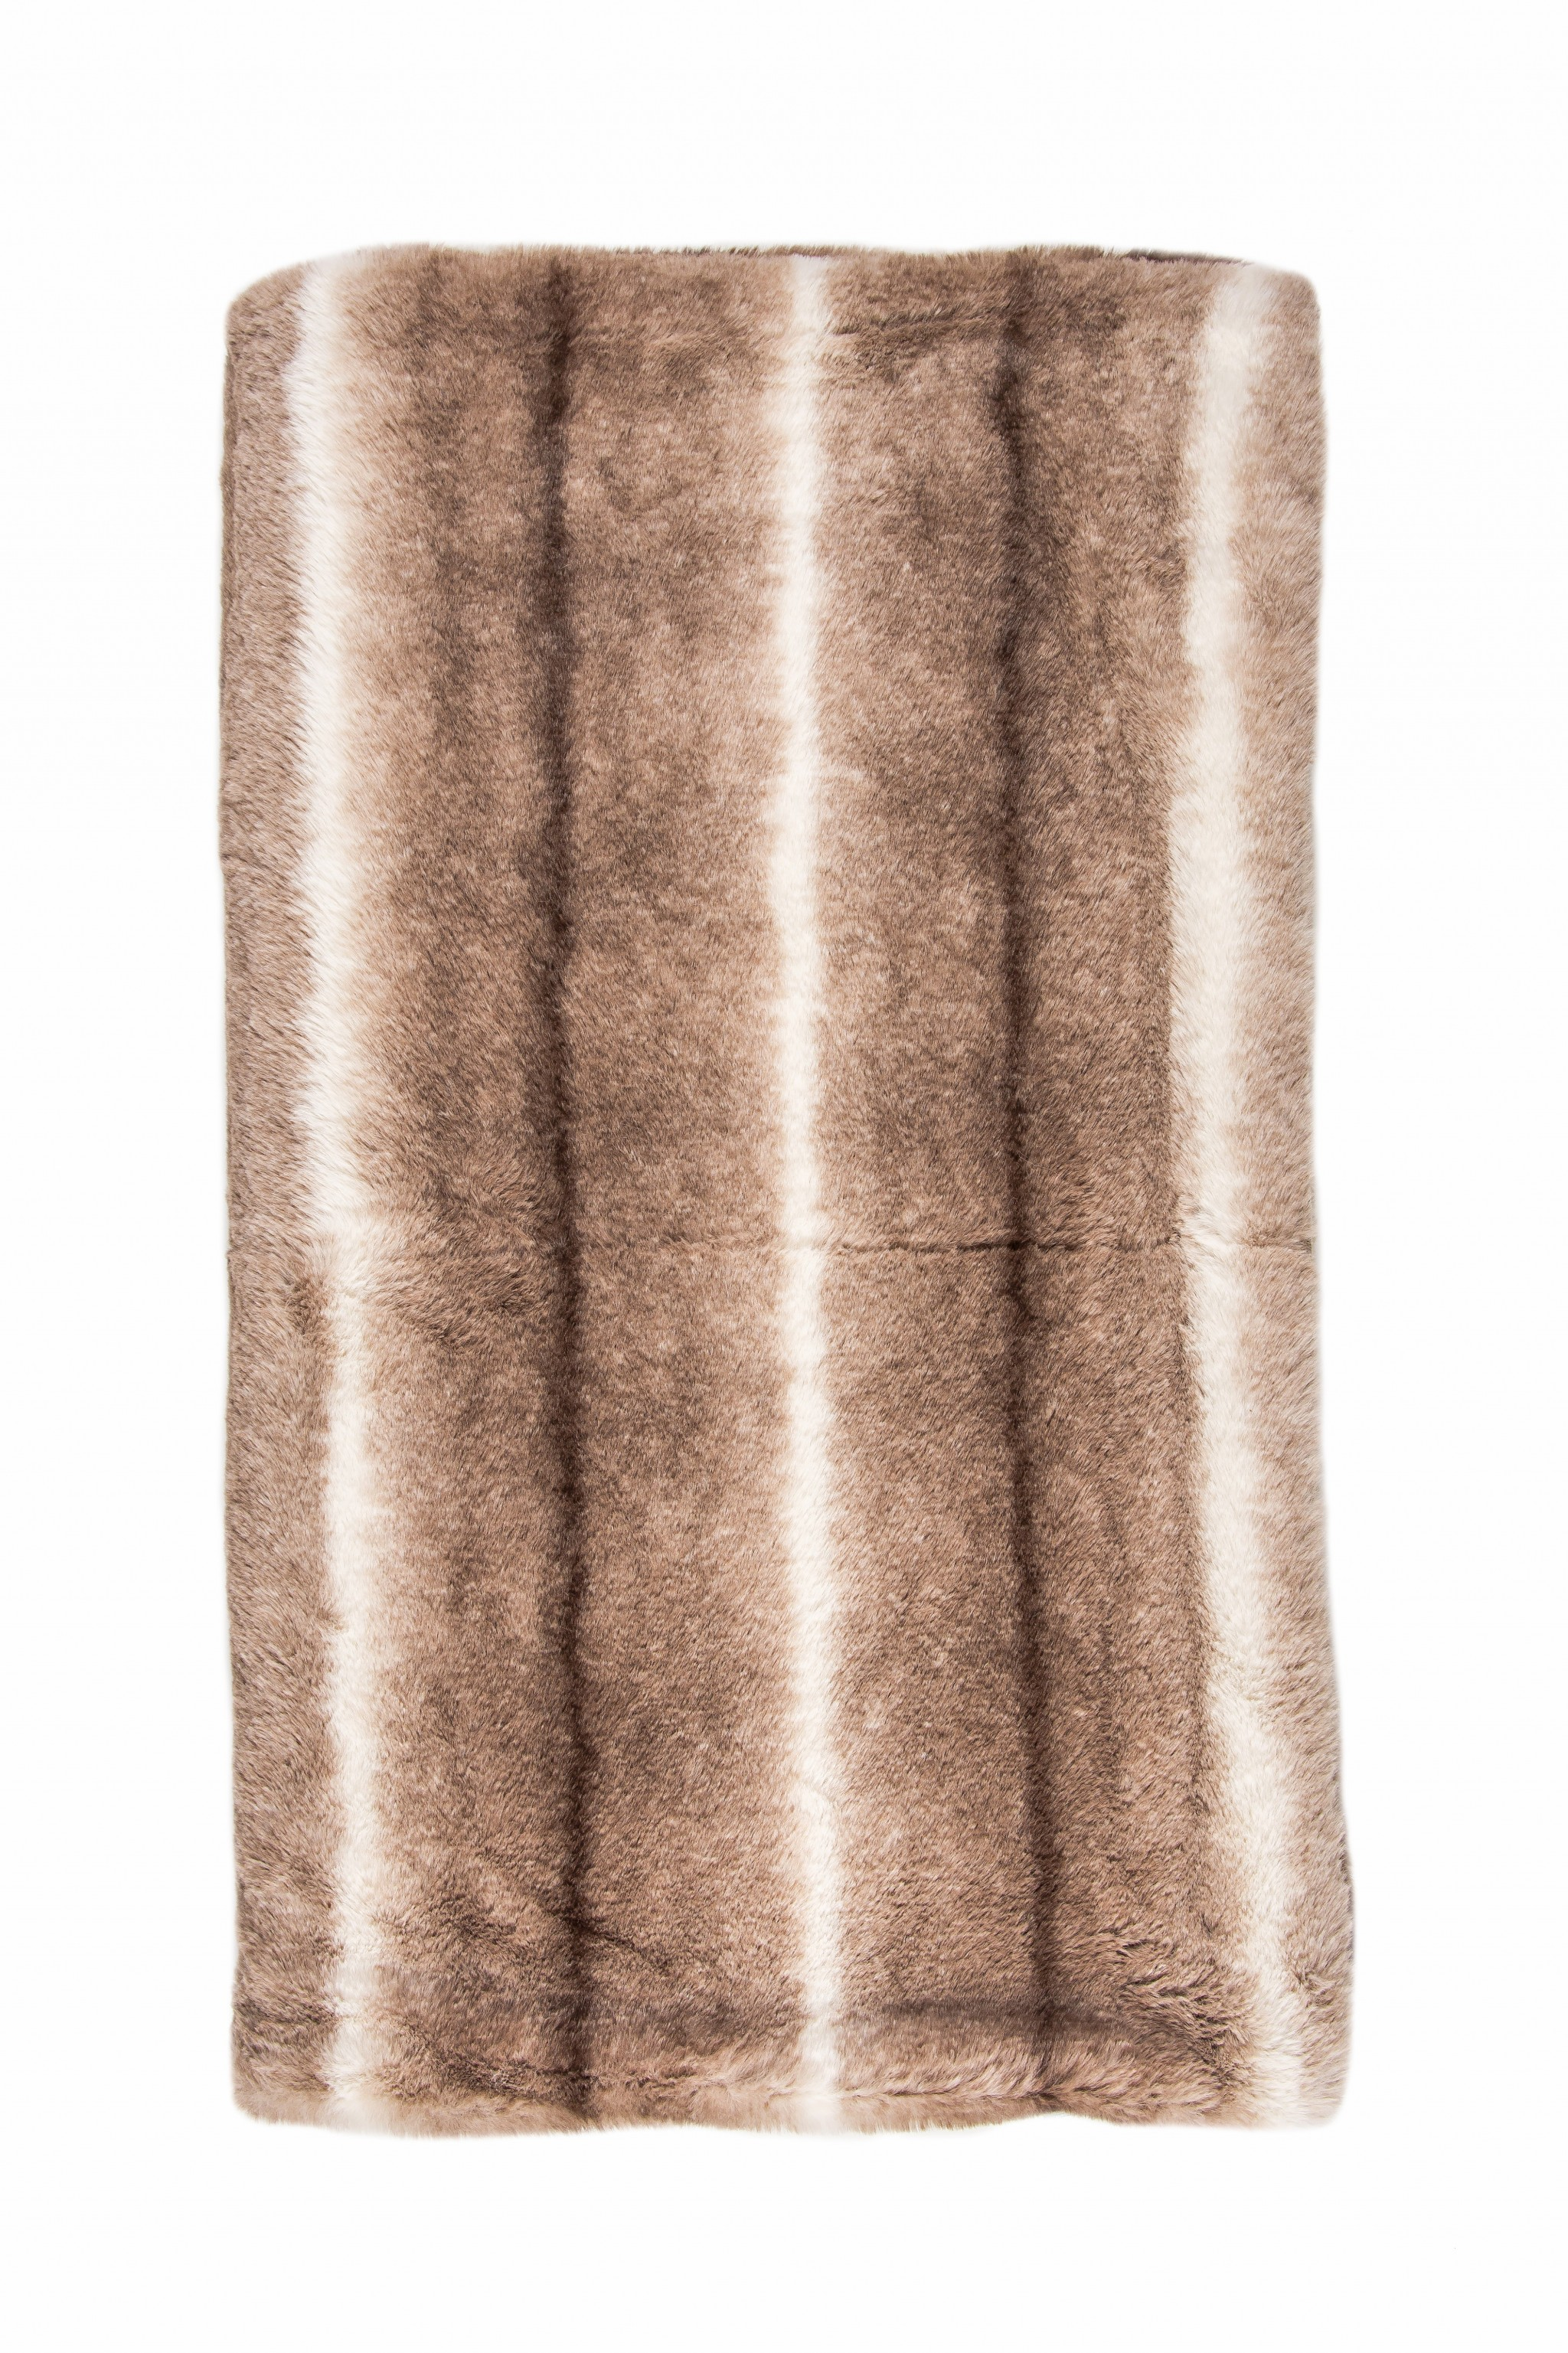 "50"" x 70"" x 2"" Taupe, Faux Fur - Throw"